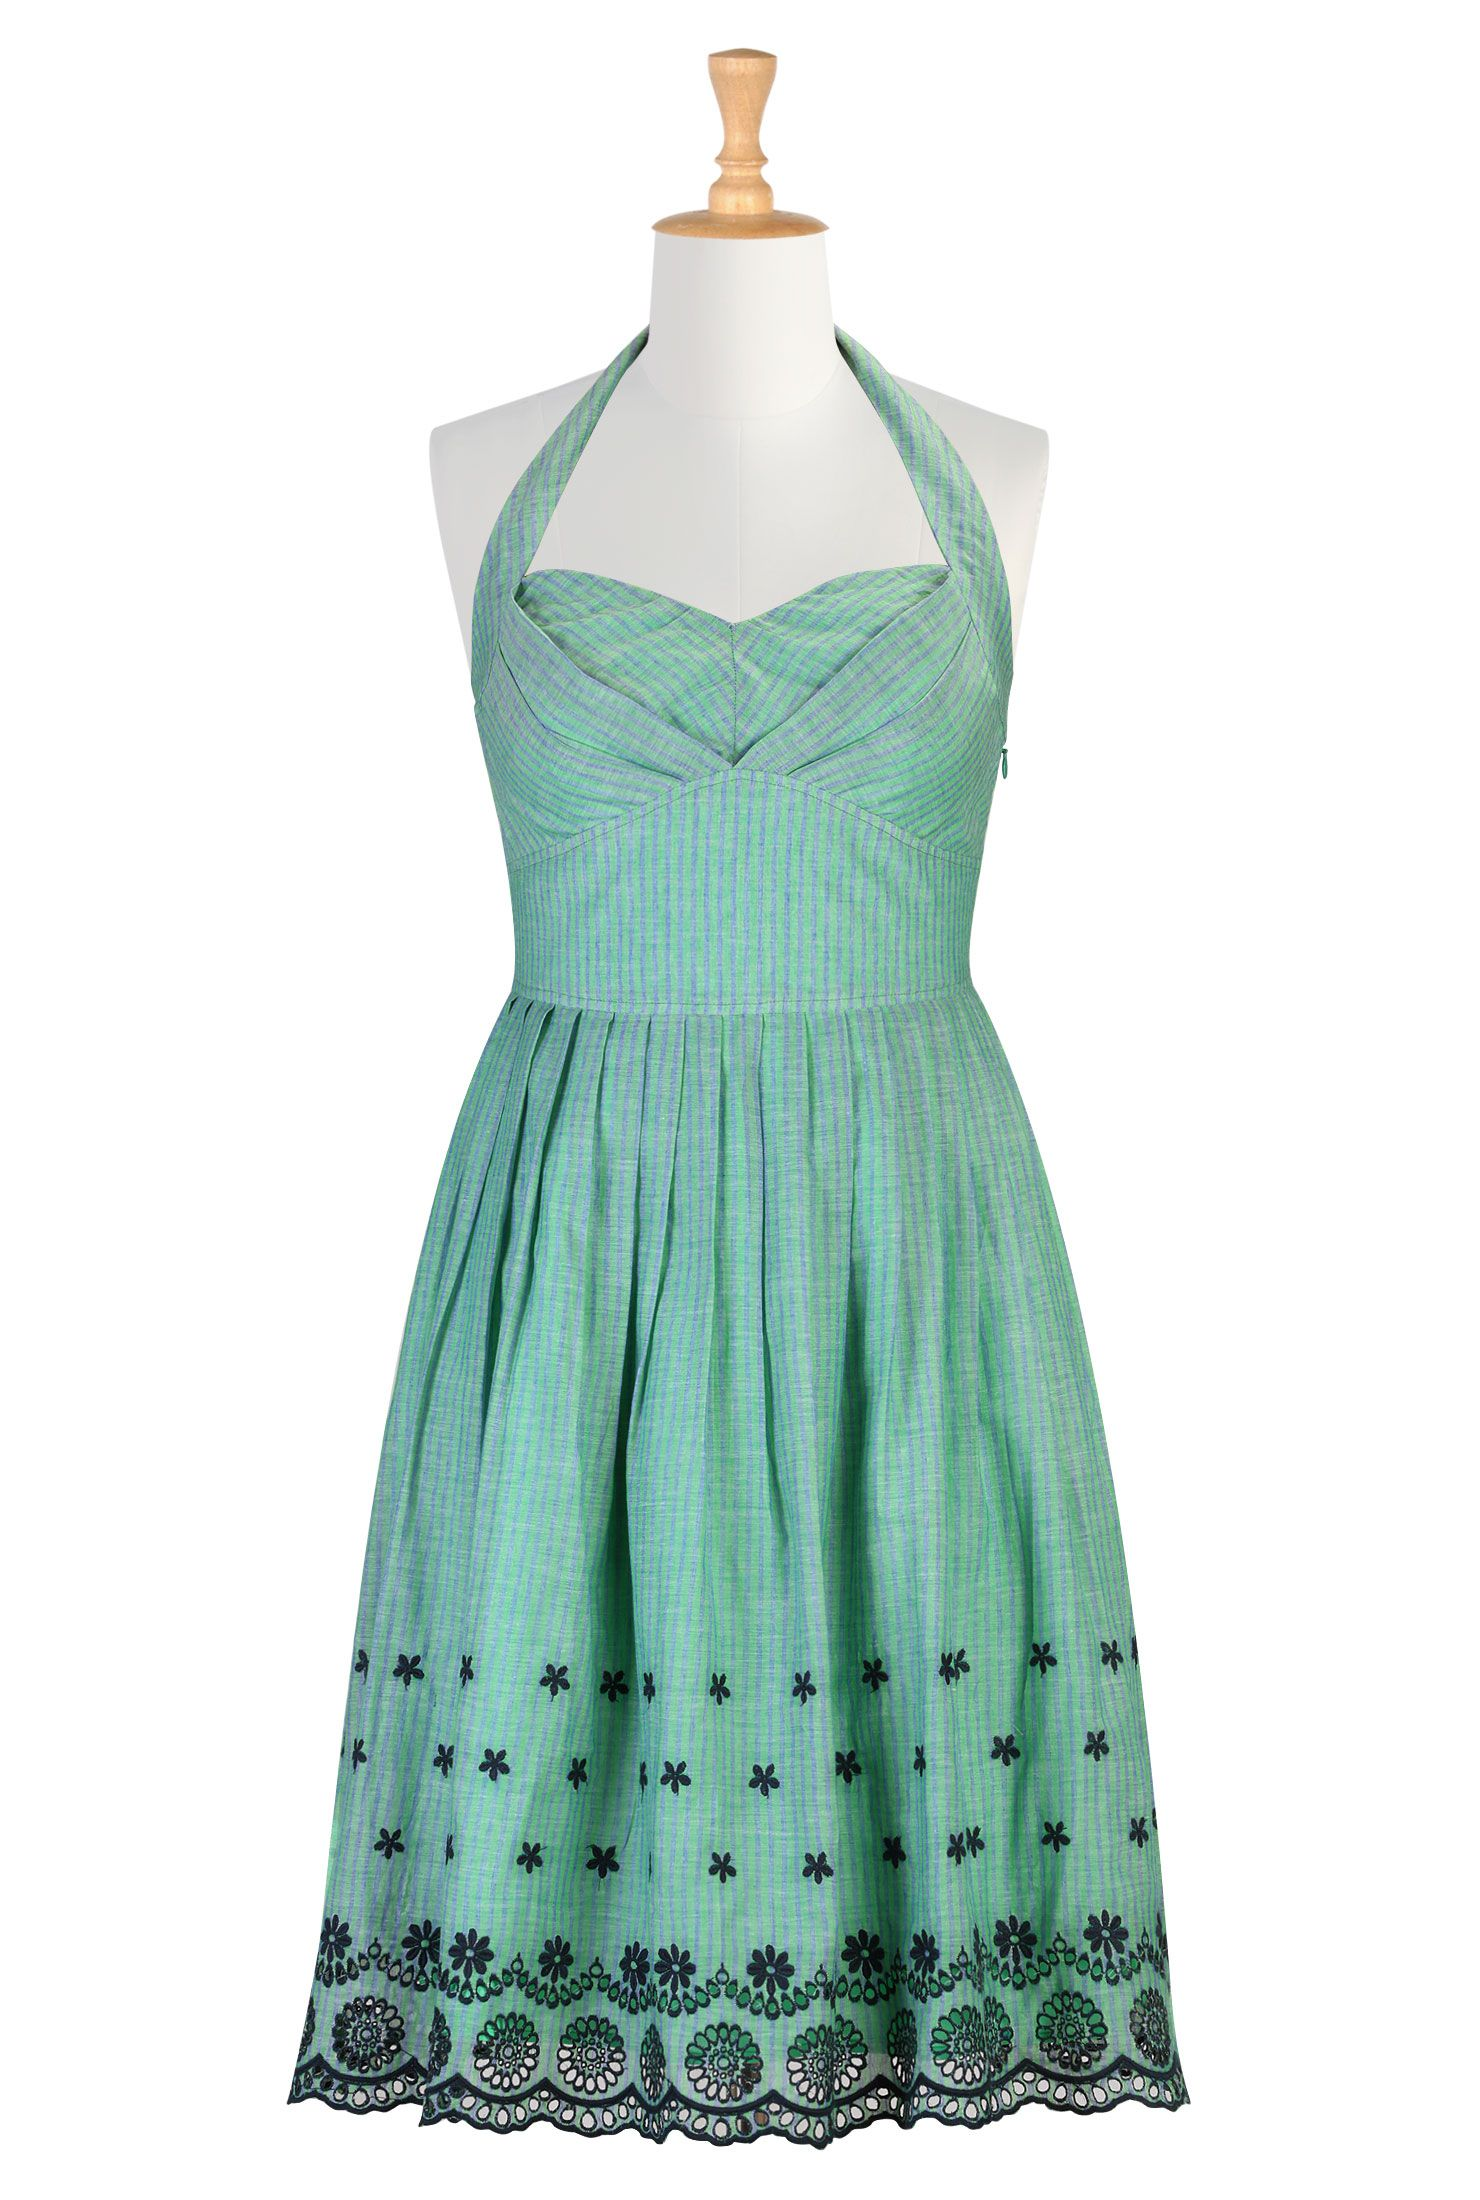 Brooklyn dress | Green party dress, Green party and Dress casual